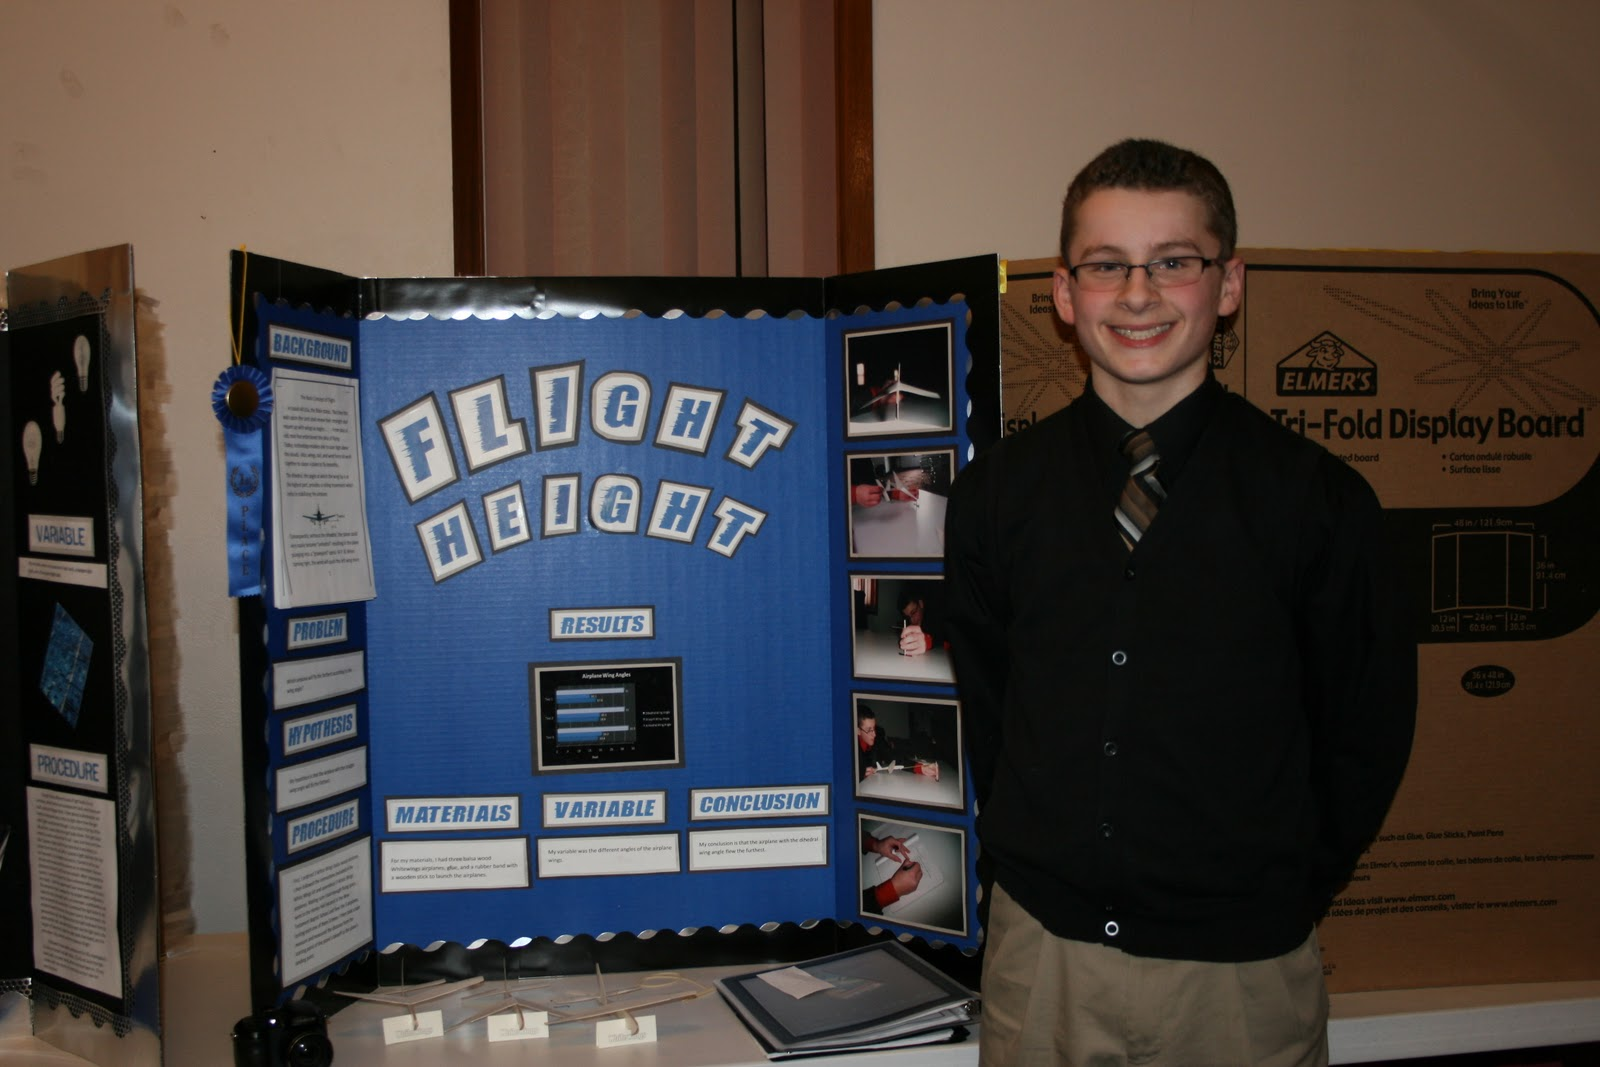 science fair project for 8th grade Explore award winning science fair projects for 6th|7th|8th|9th grade,science projects fair ideas experiments, kids project experiment ideas, science experiment projects, simple, cool, fun and easy science fair experiments, topics for science experiments, and also for middle school, elementary school for class 5th grade, 6th, 7th, 8th.